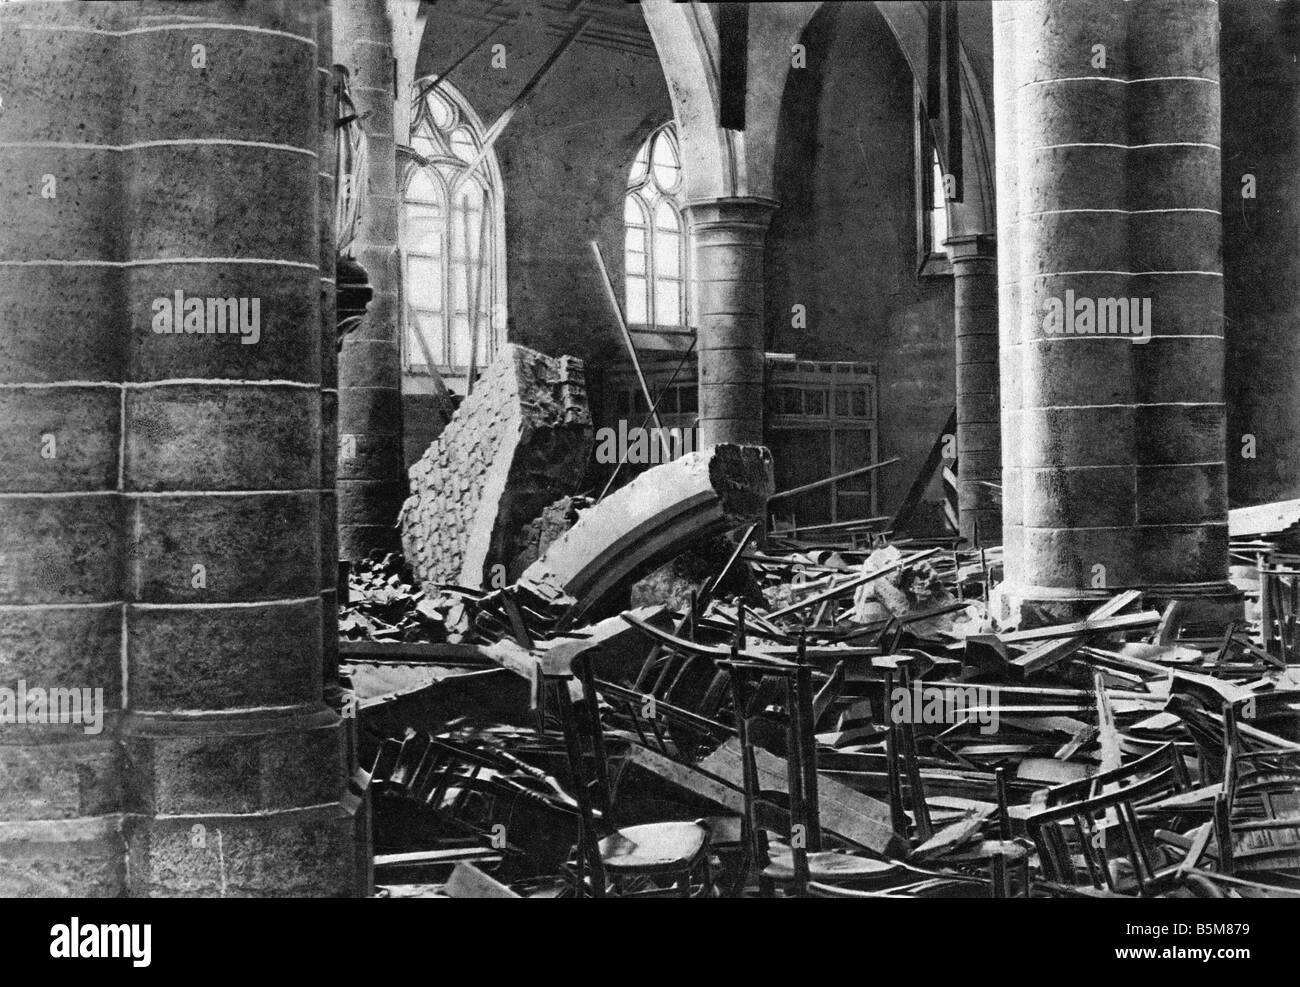 2 G55 B1 1918 3 Aerial Warfare Zeebrugge History World War One Aerial warfare The Church at Lisseweghe Zeebrugge - Stock Image